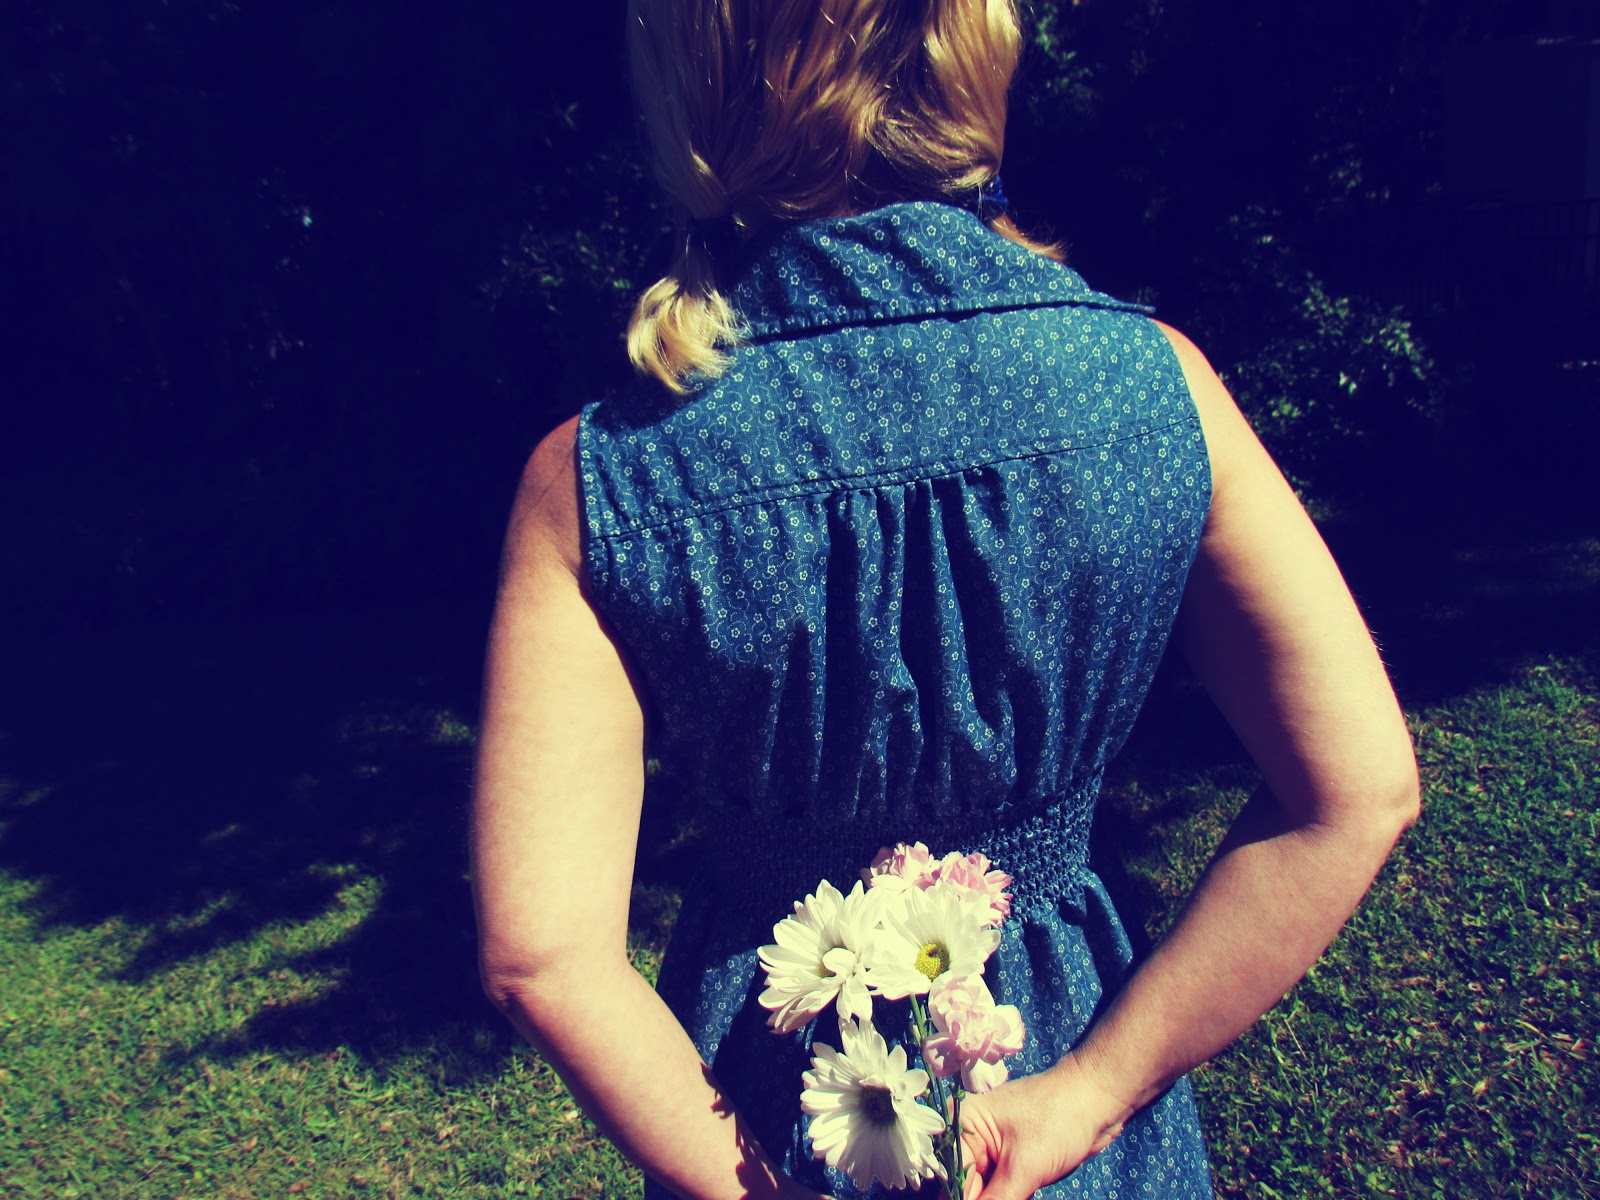 Gloom and Glow Mood Lighting of Woman in Blue Denim Dress Holding Flowers While Facing a Nature Background